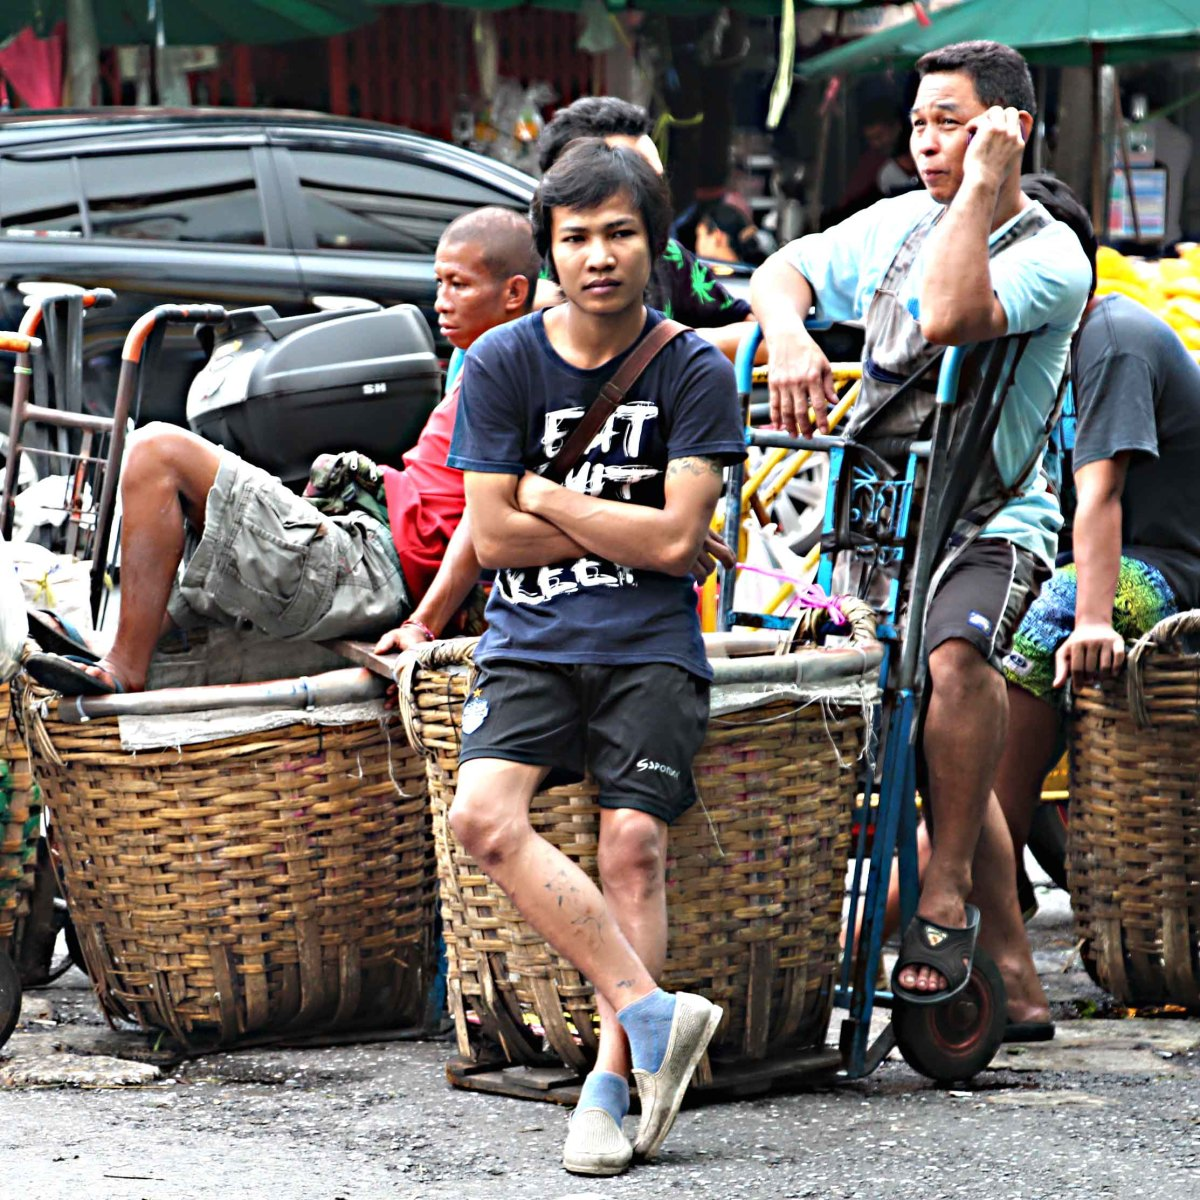 Market delivery men take a breather from ferrying goods in their giant baskets